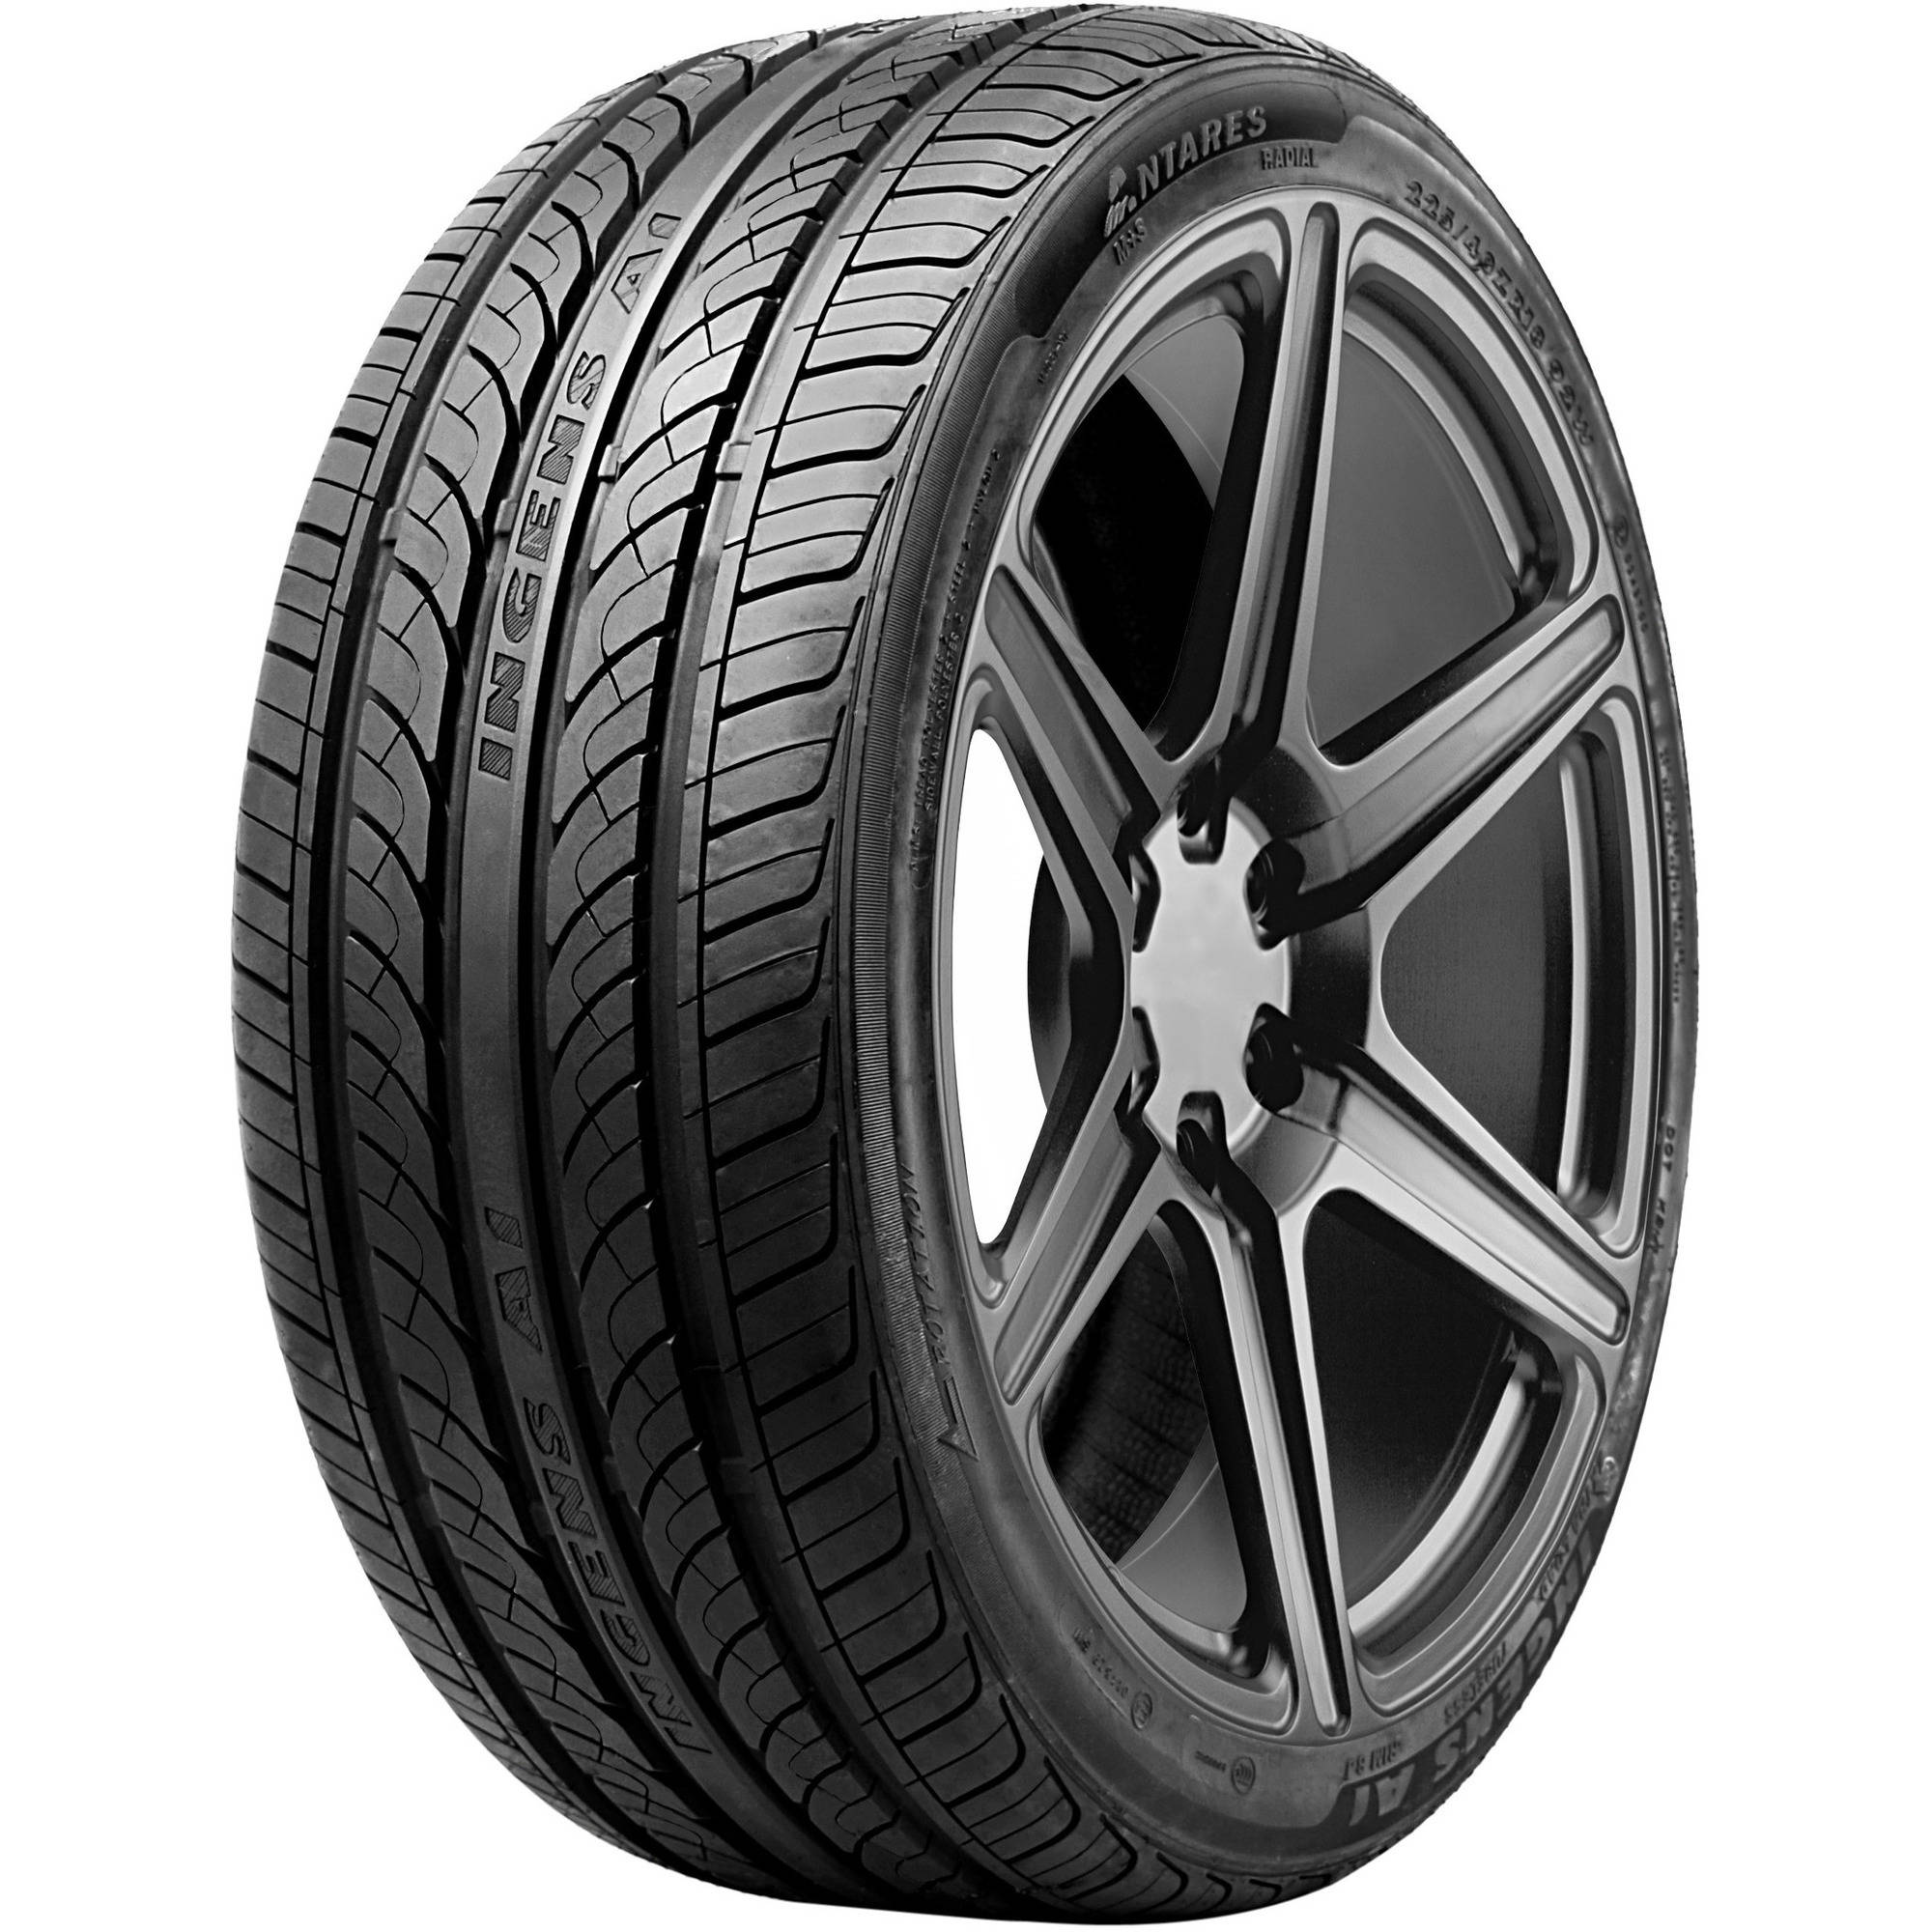 Antares Ingens A1 215 60R16 95H Tire by Antares